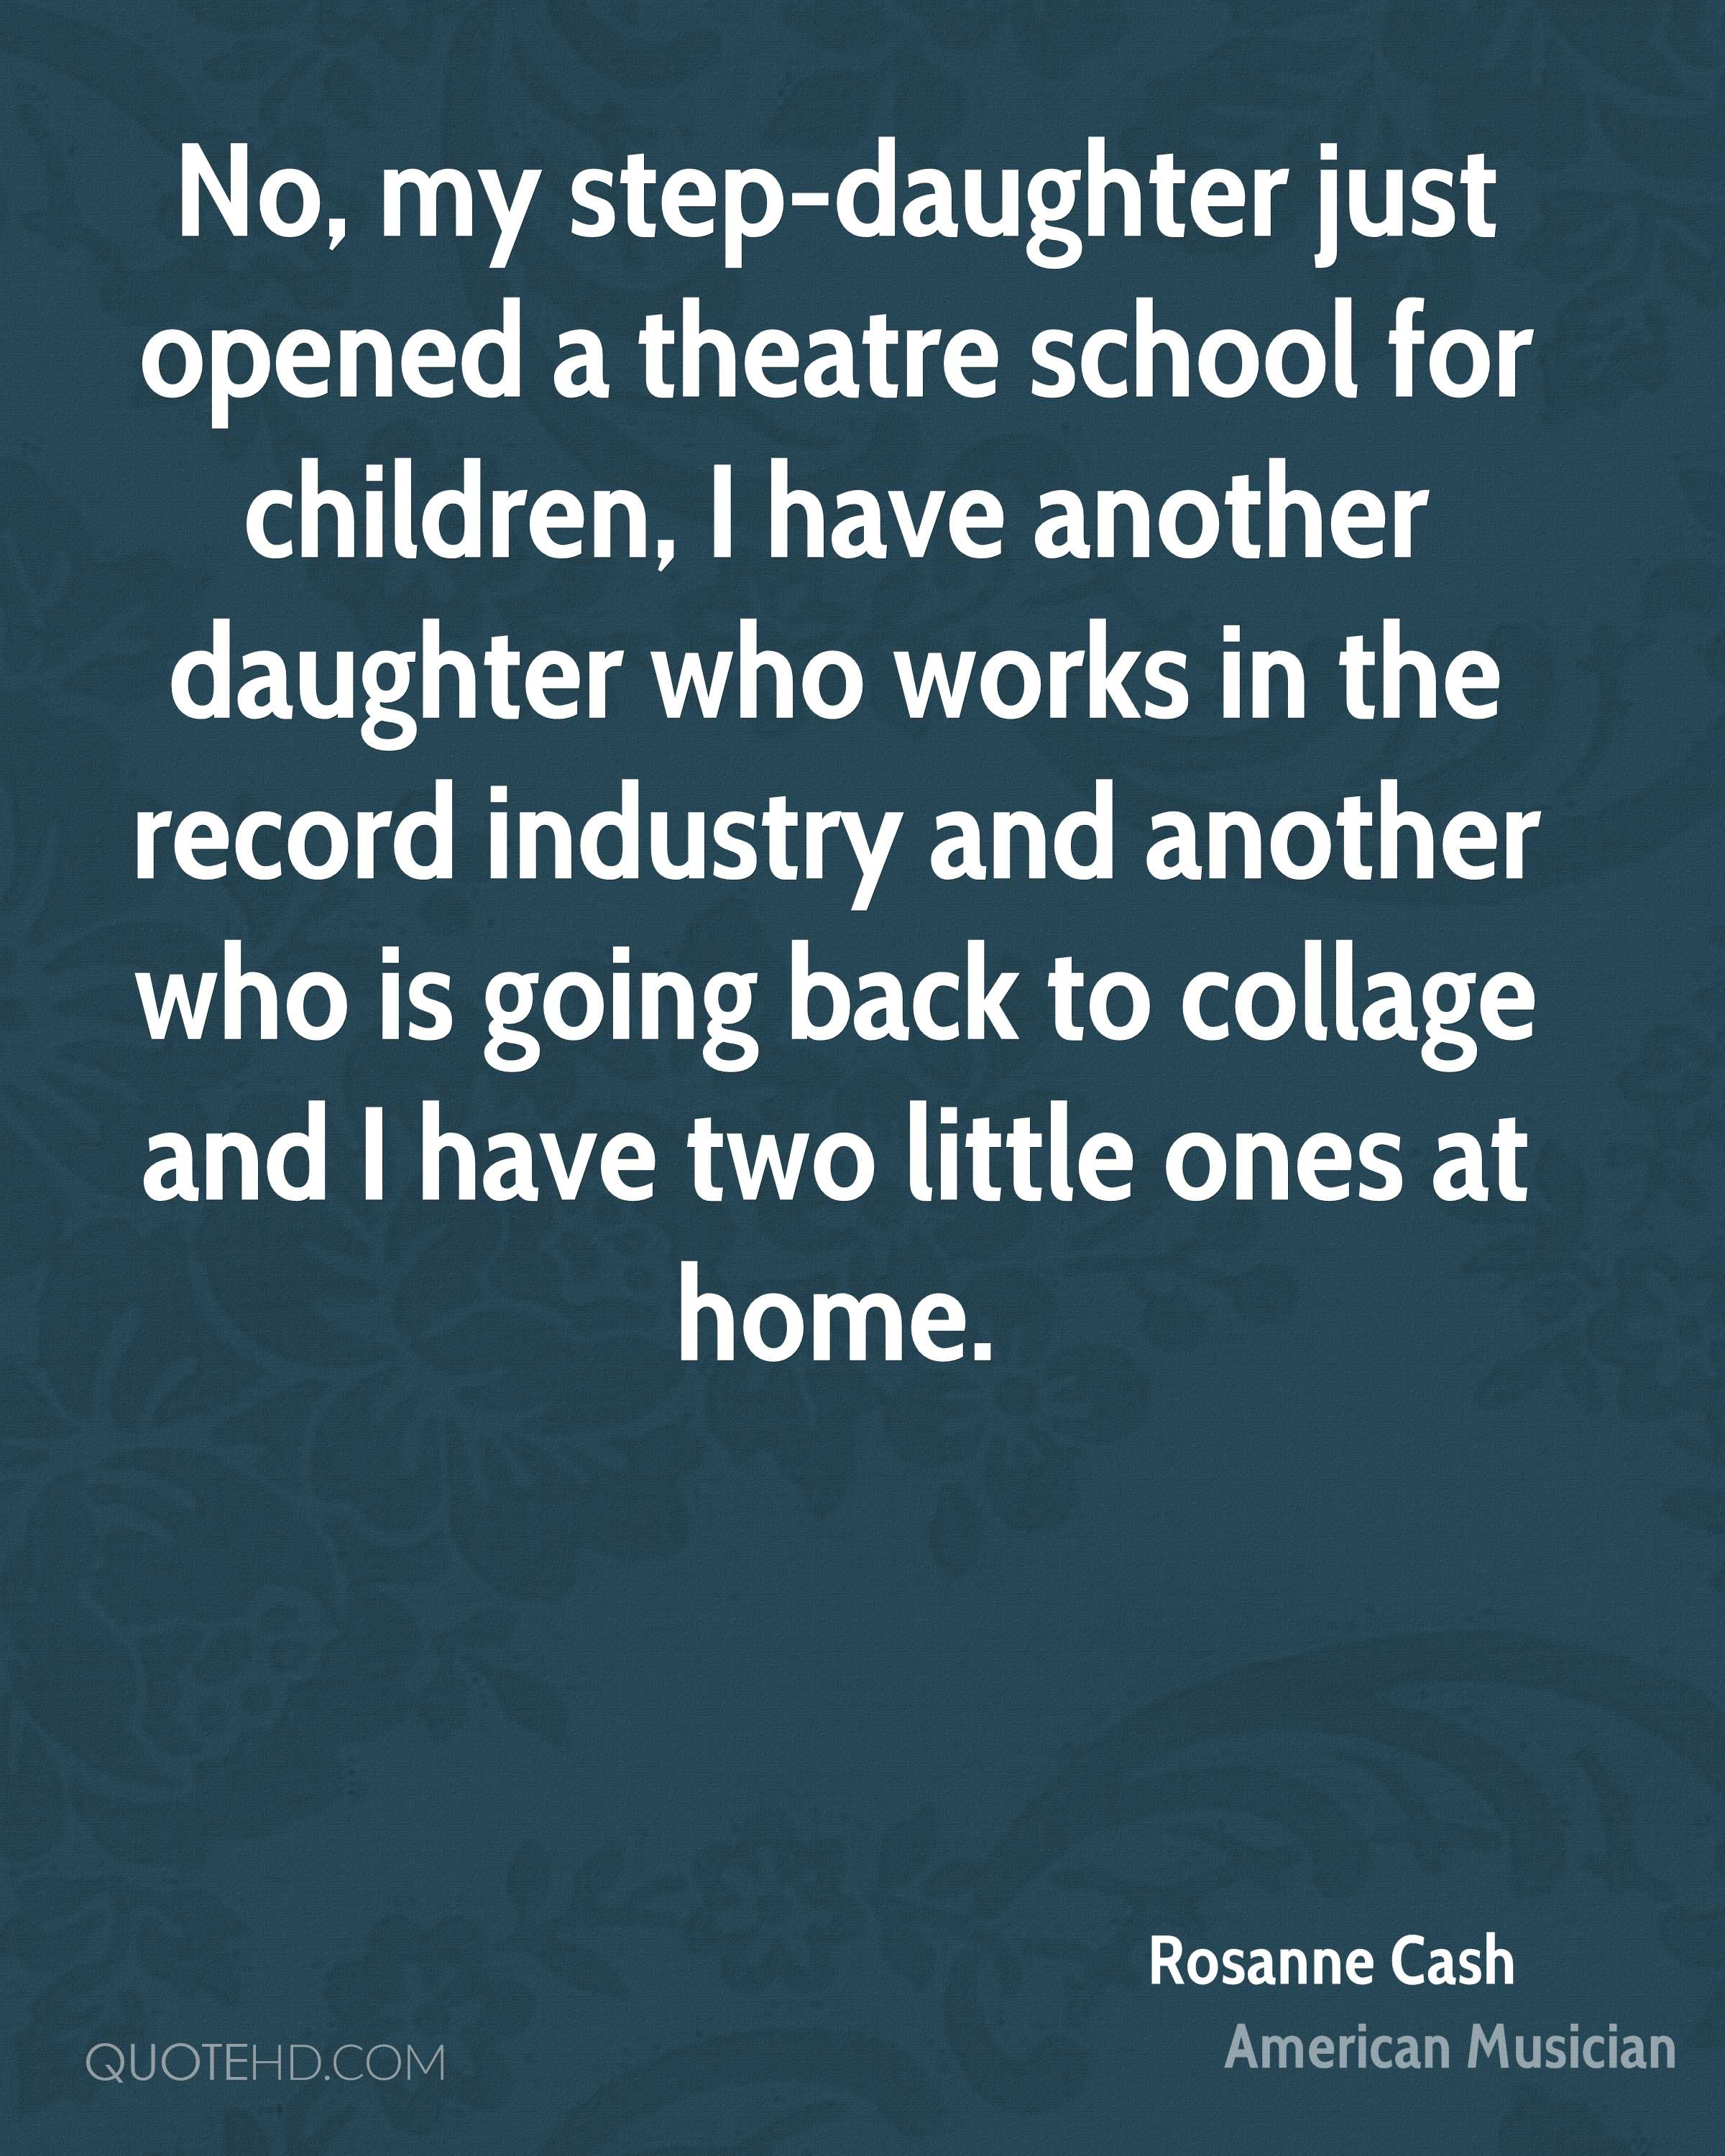 No, my step-daughter just opened a theatre school for children, I have another daughter who works in the record industry and another who is going back to collage and I have two little ones at home.